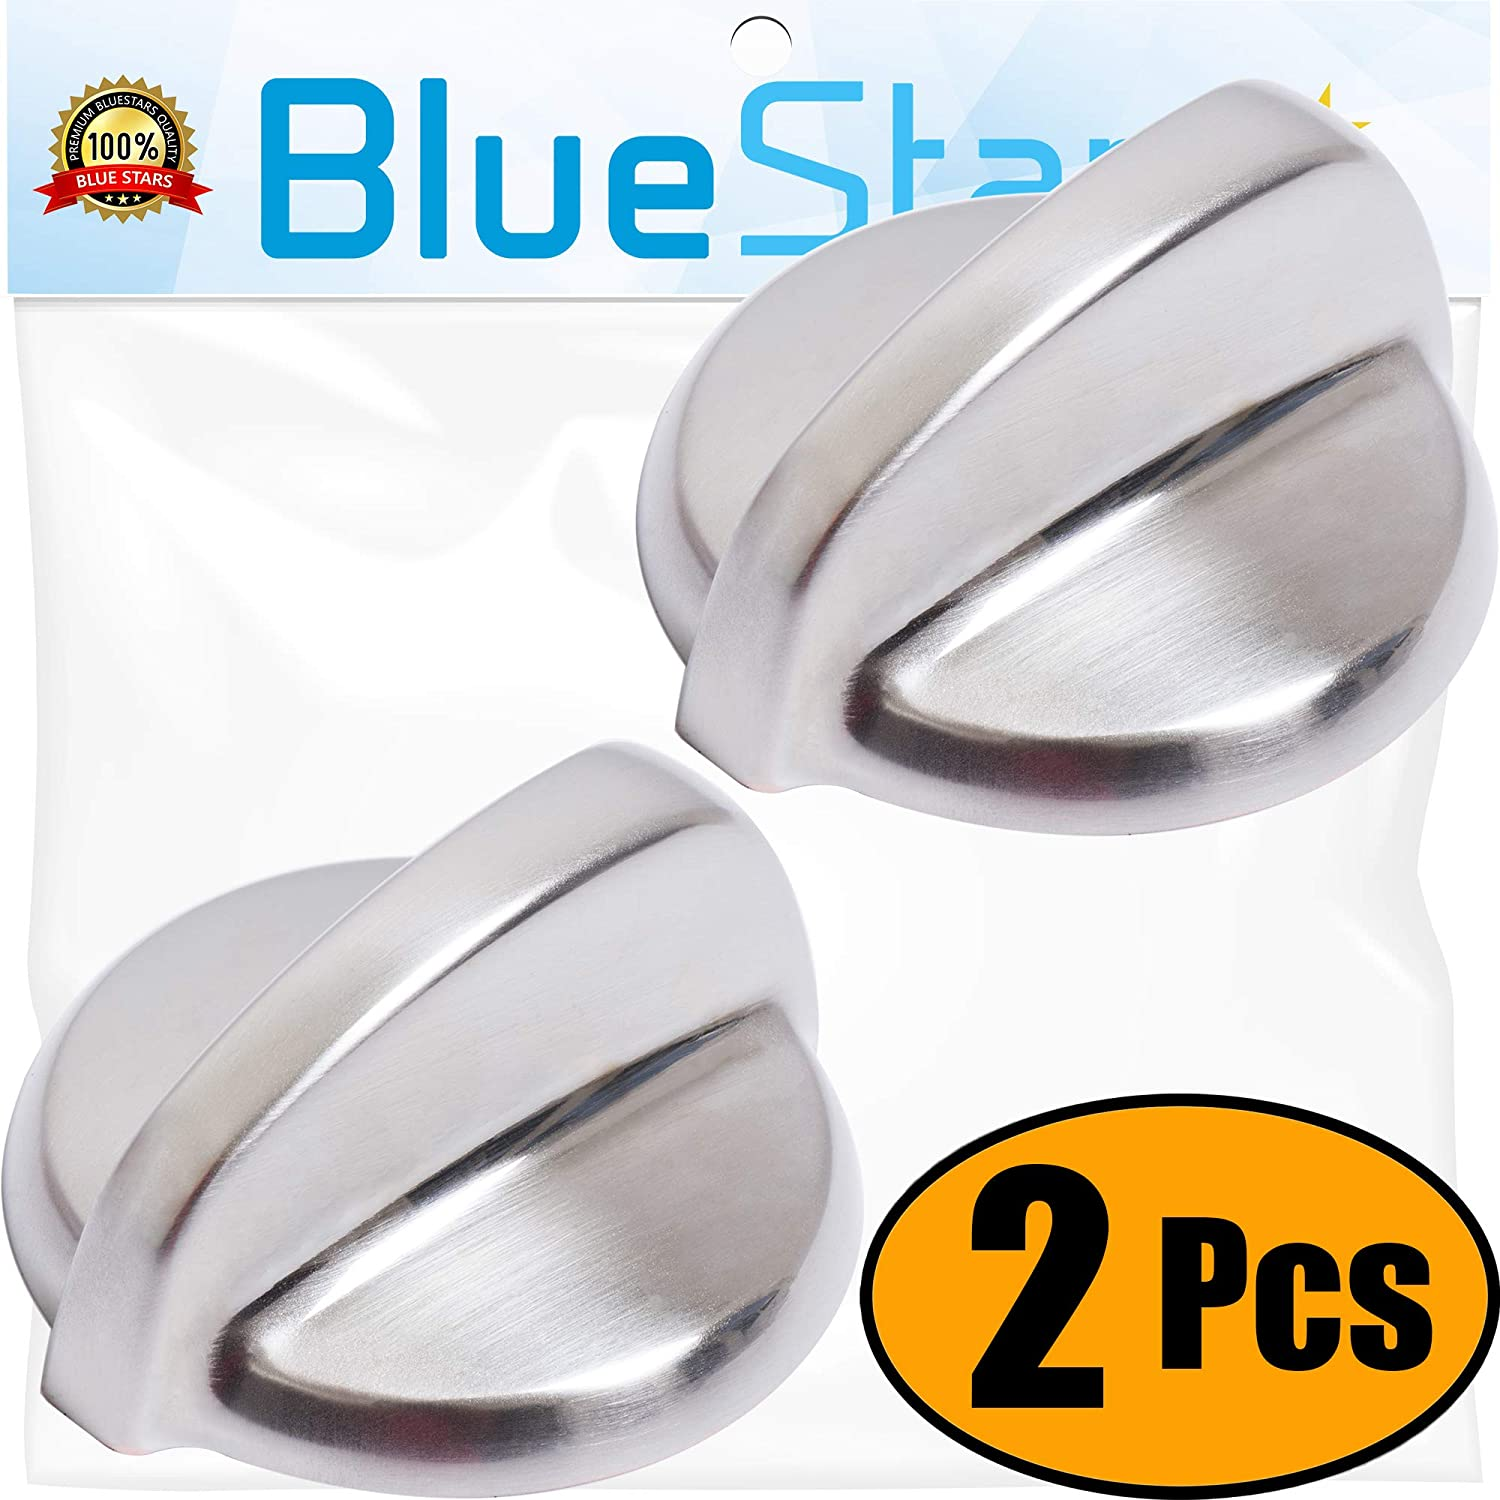 PACK OF 2 BlueStars Replaces AP3963896 WB03T10229 WB03T10256 Ultra Durable WB03T10266 Range Stove Knob Replacement Part by Blue Stars Exact Fit for GE Models